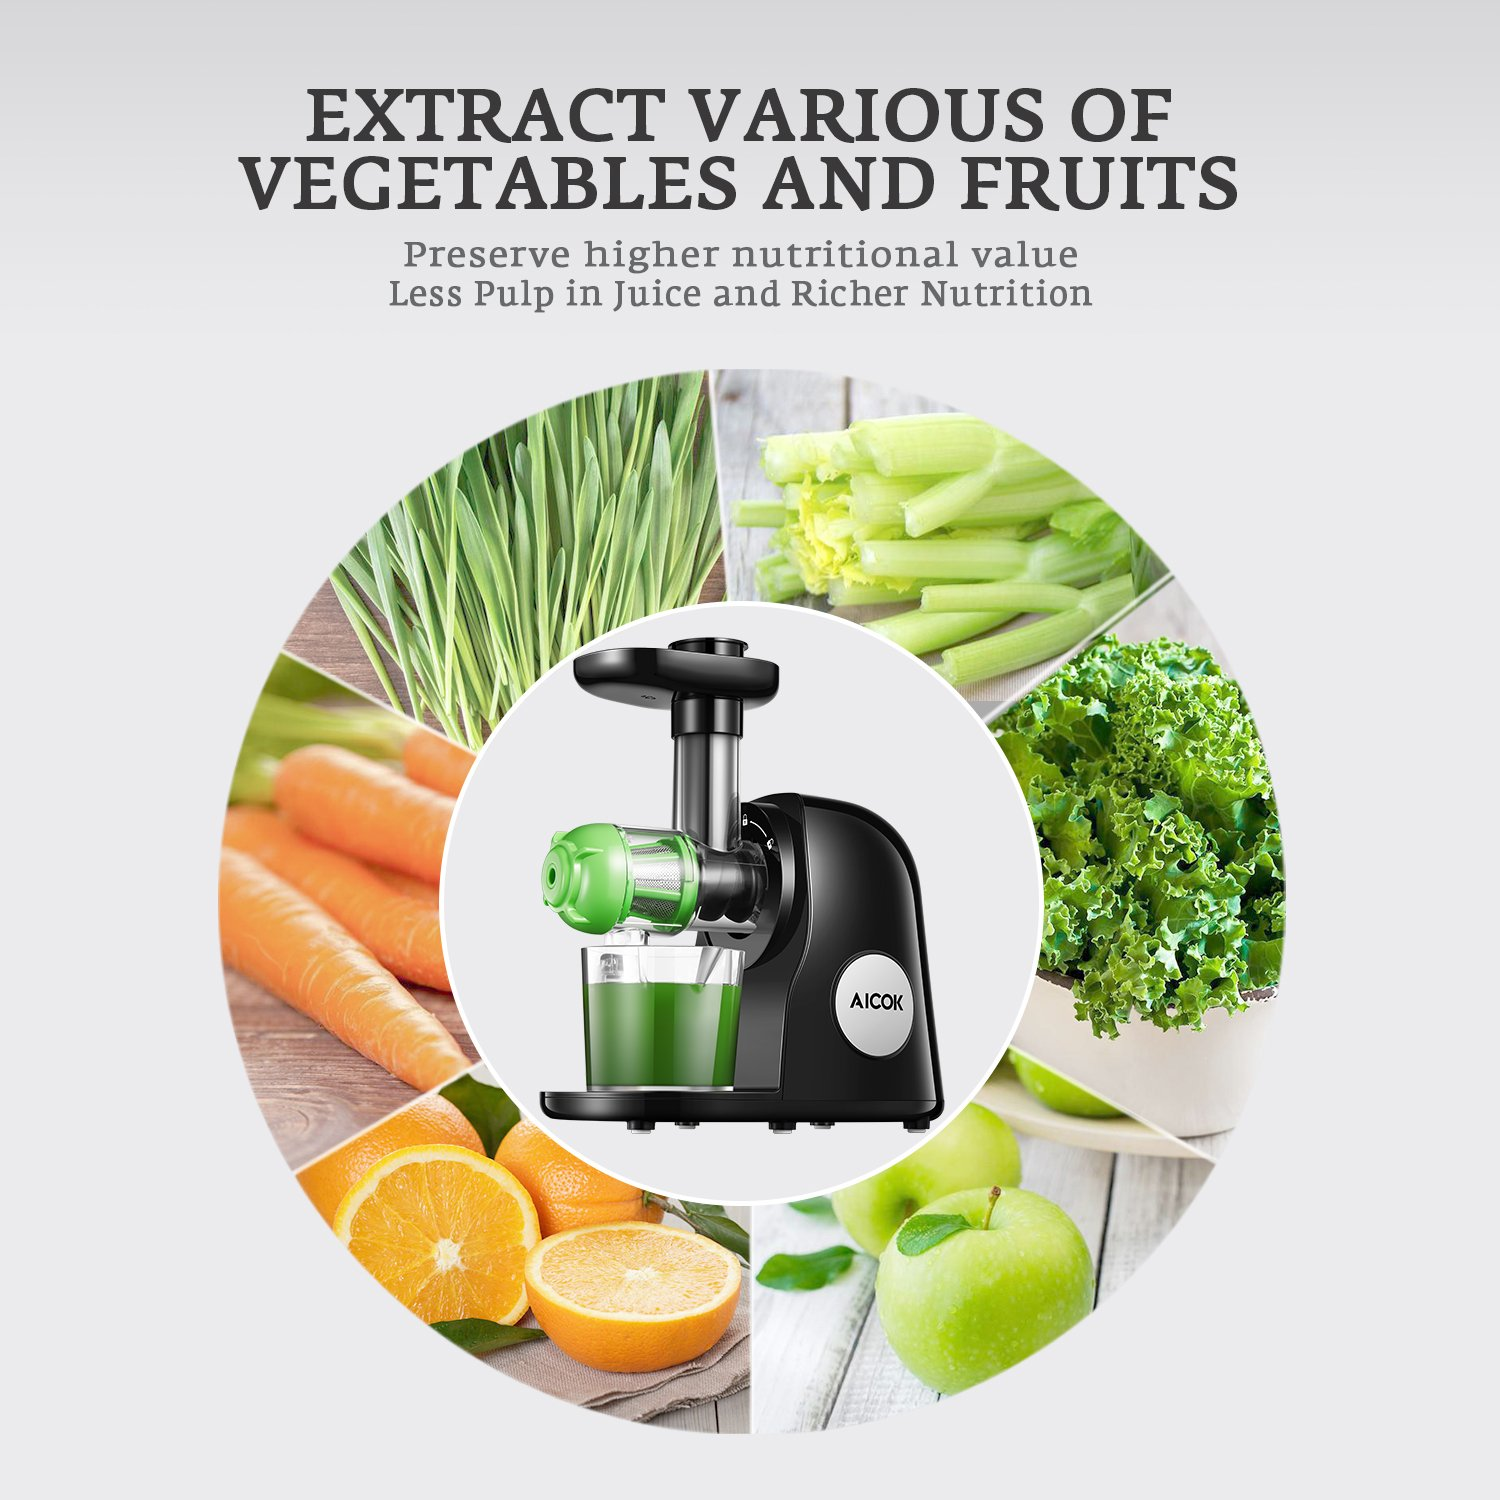 Juicer Masticating Slow Juicer Extractor, Aicok Juice Quiet Motor & Reverse Function, BPA Free, Cold Press Juicer Easy to Clean with Brush, Juice Machine Recipes for Vegetables and Fruits by AICOK (Image #5)